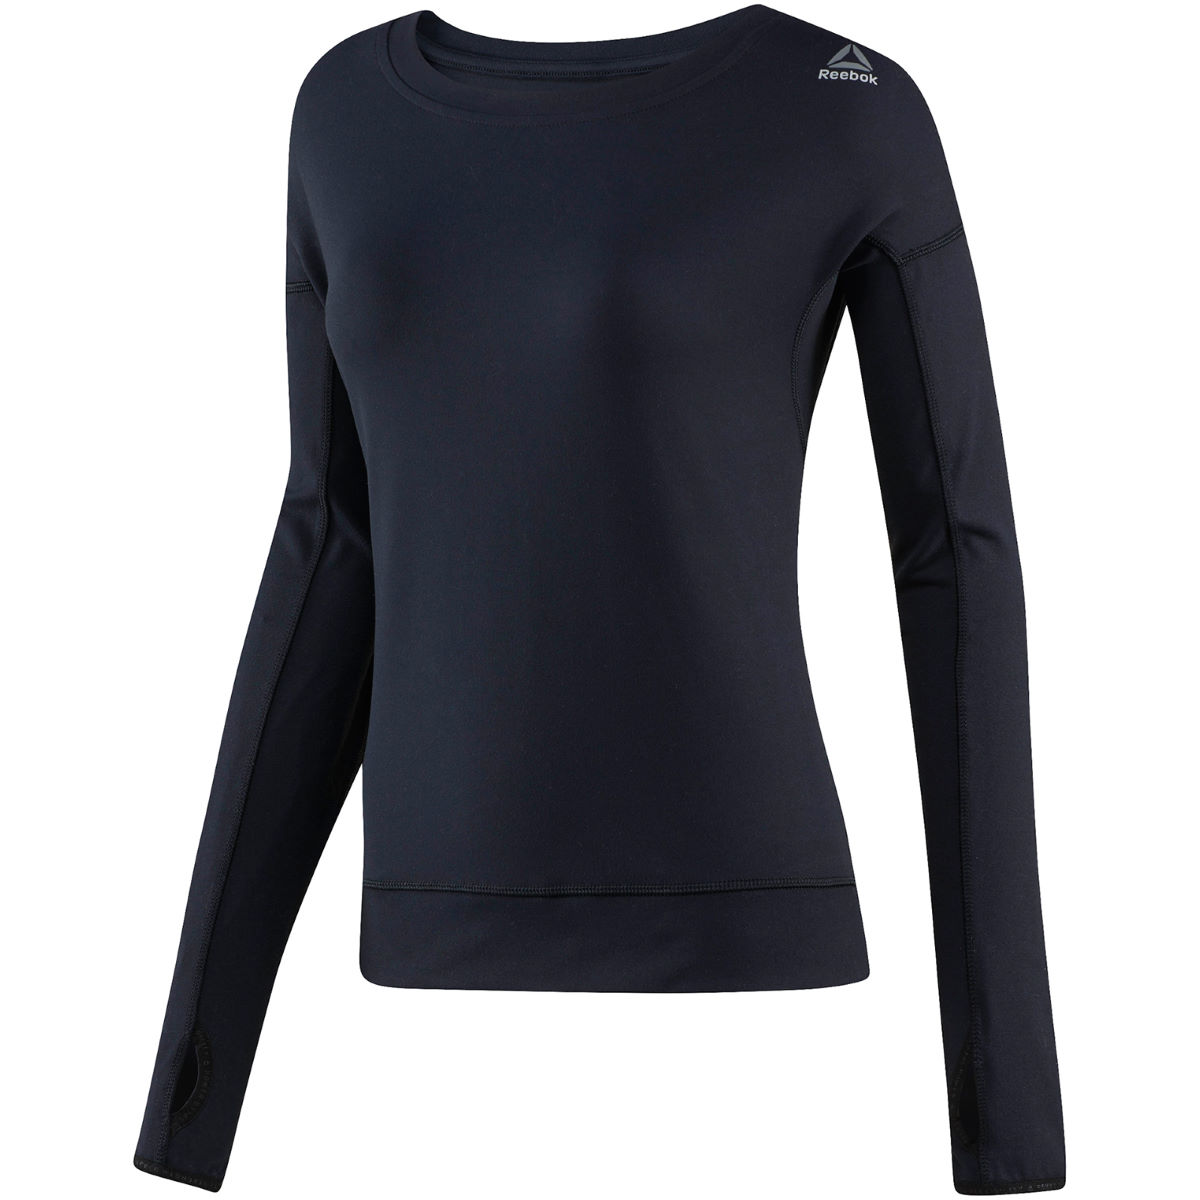 Reebok Women's Speedwick Gym Crew - XL Black